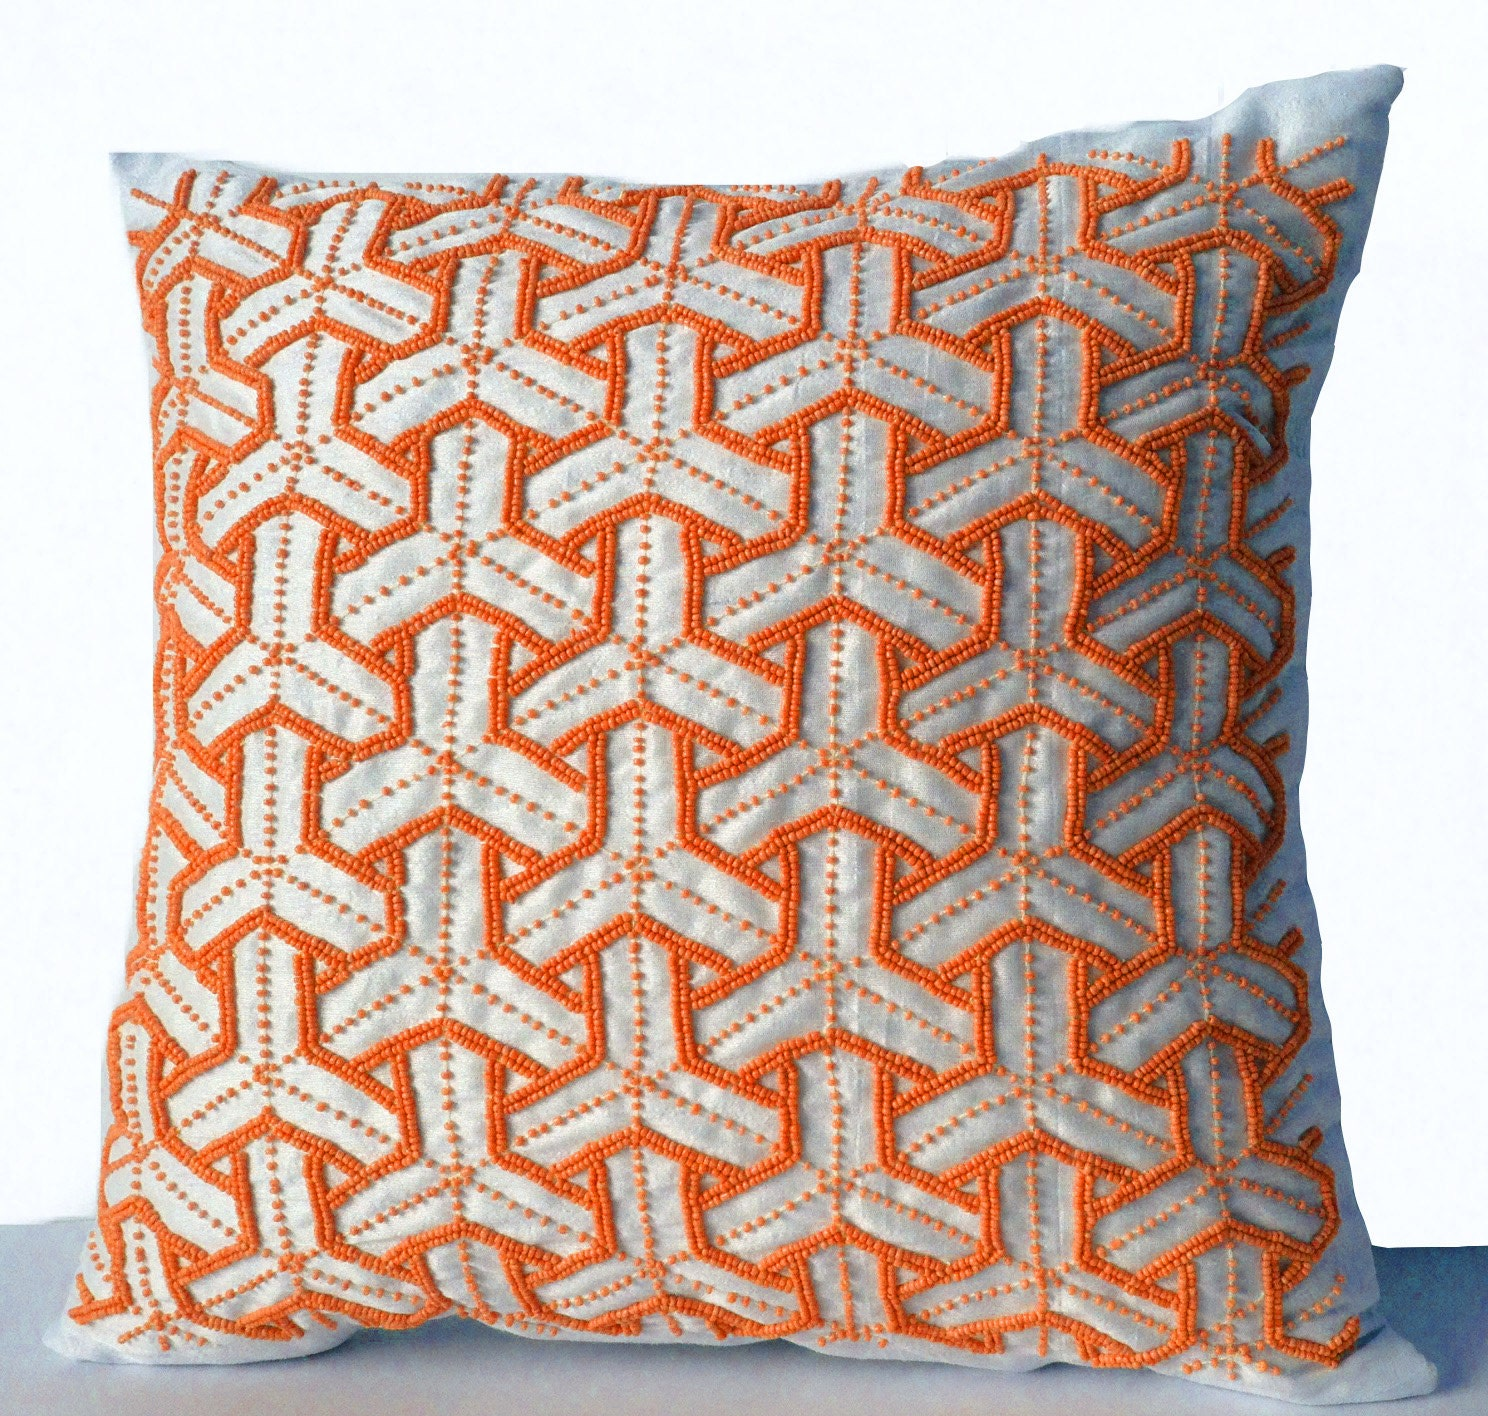 Ivory Silk Throw Pillow Cover Orange Bead Geometric Sashiko